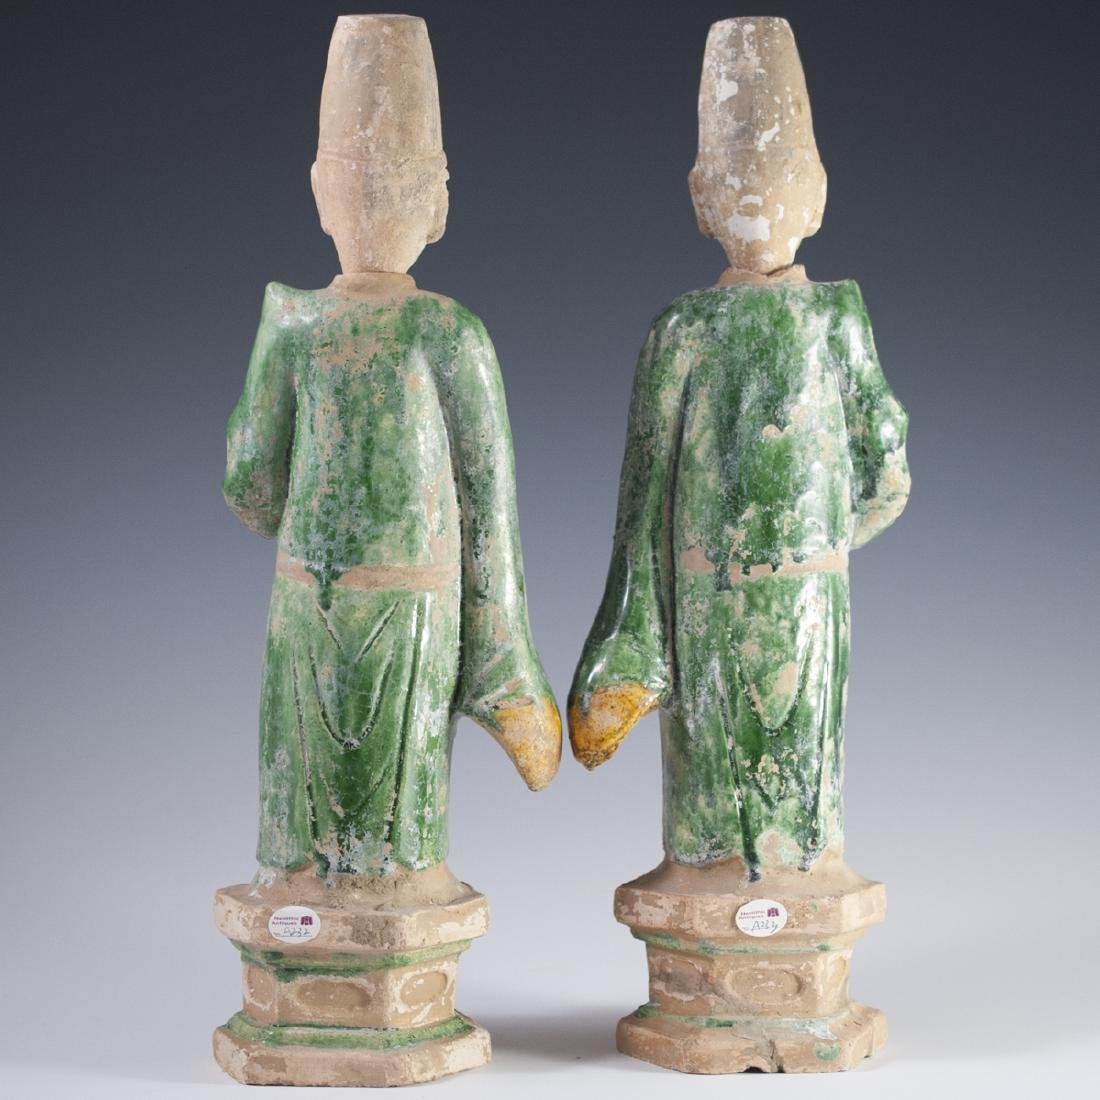 Ming Dynasty Pottery Sculptures - 6